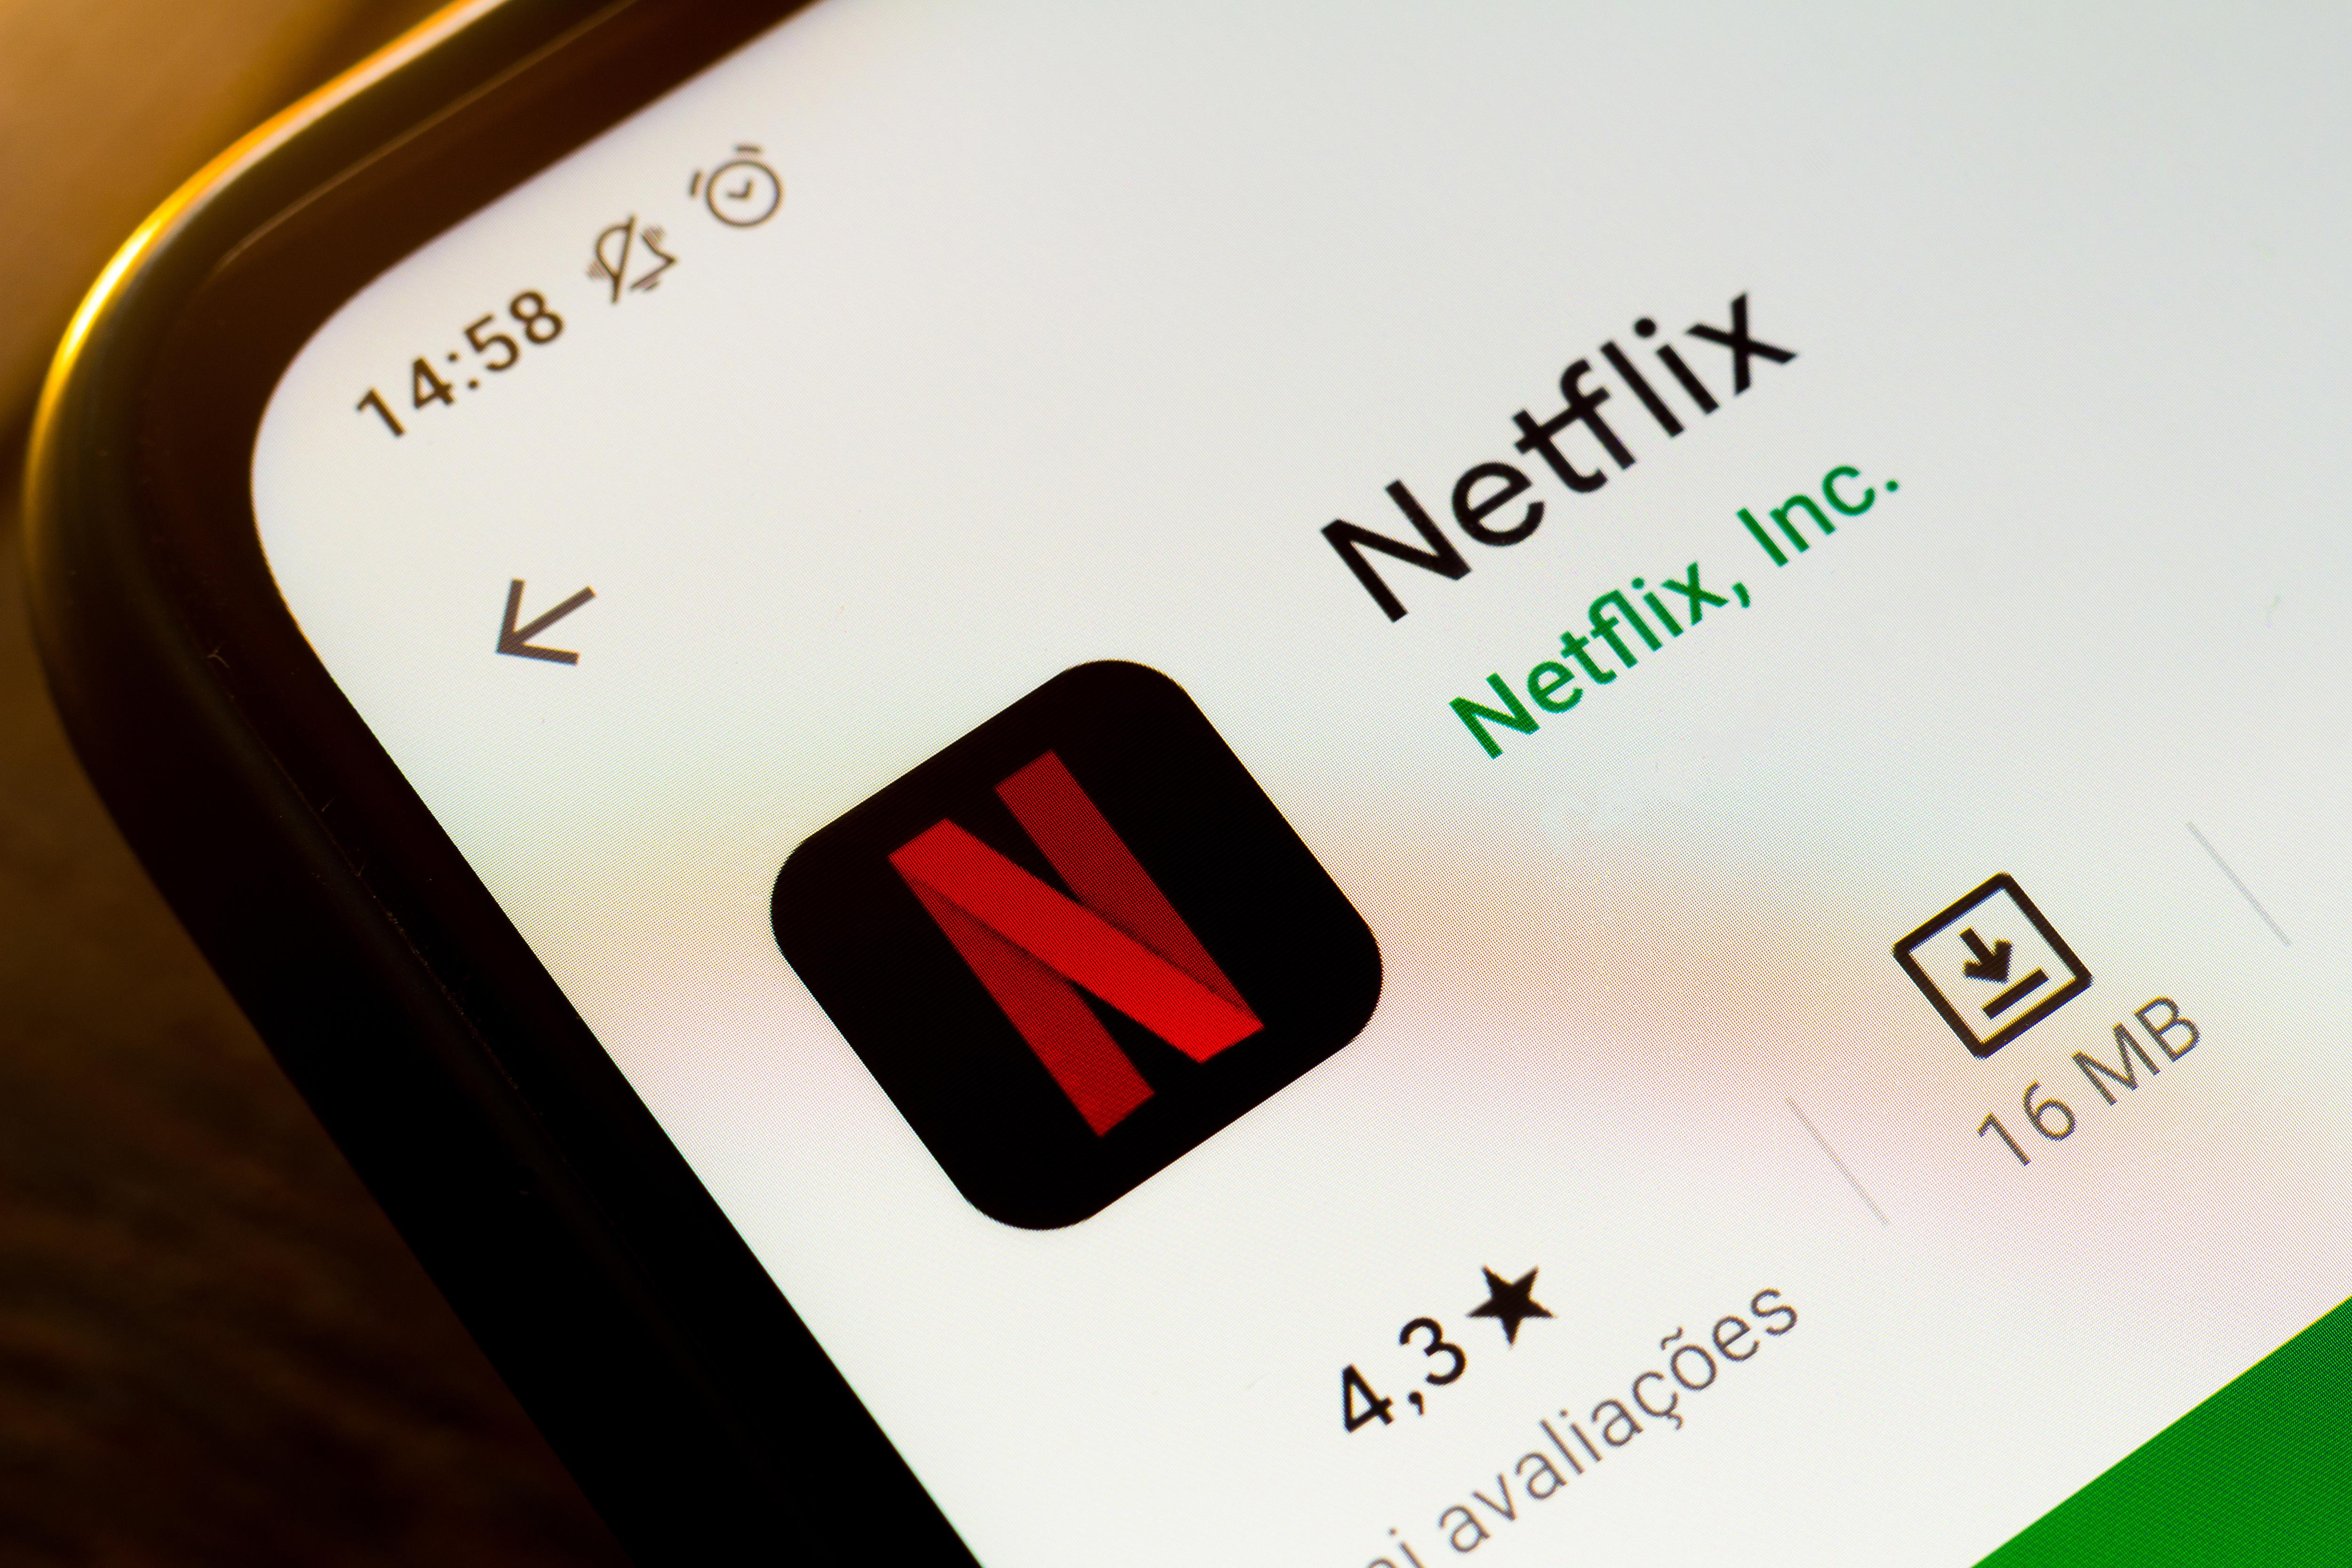 Netflix 'test' pushes password sharers to get their own account